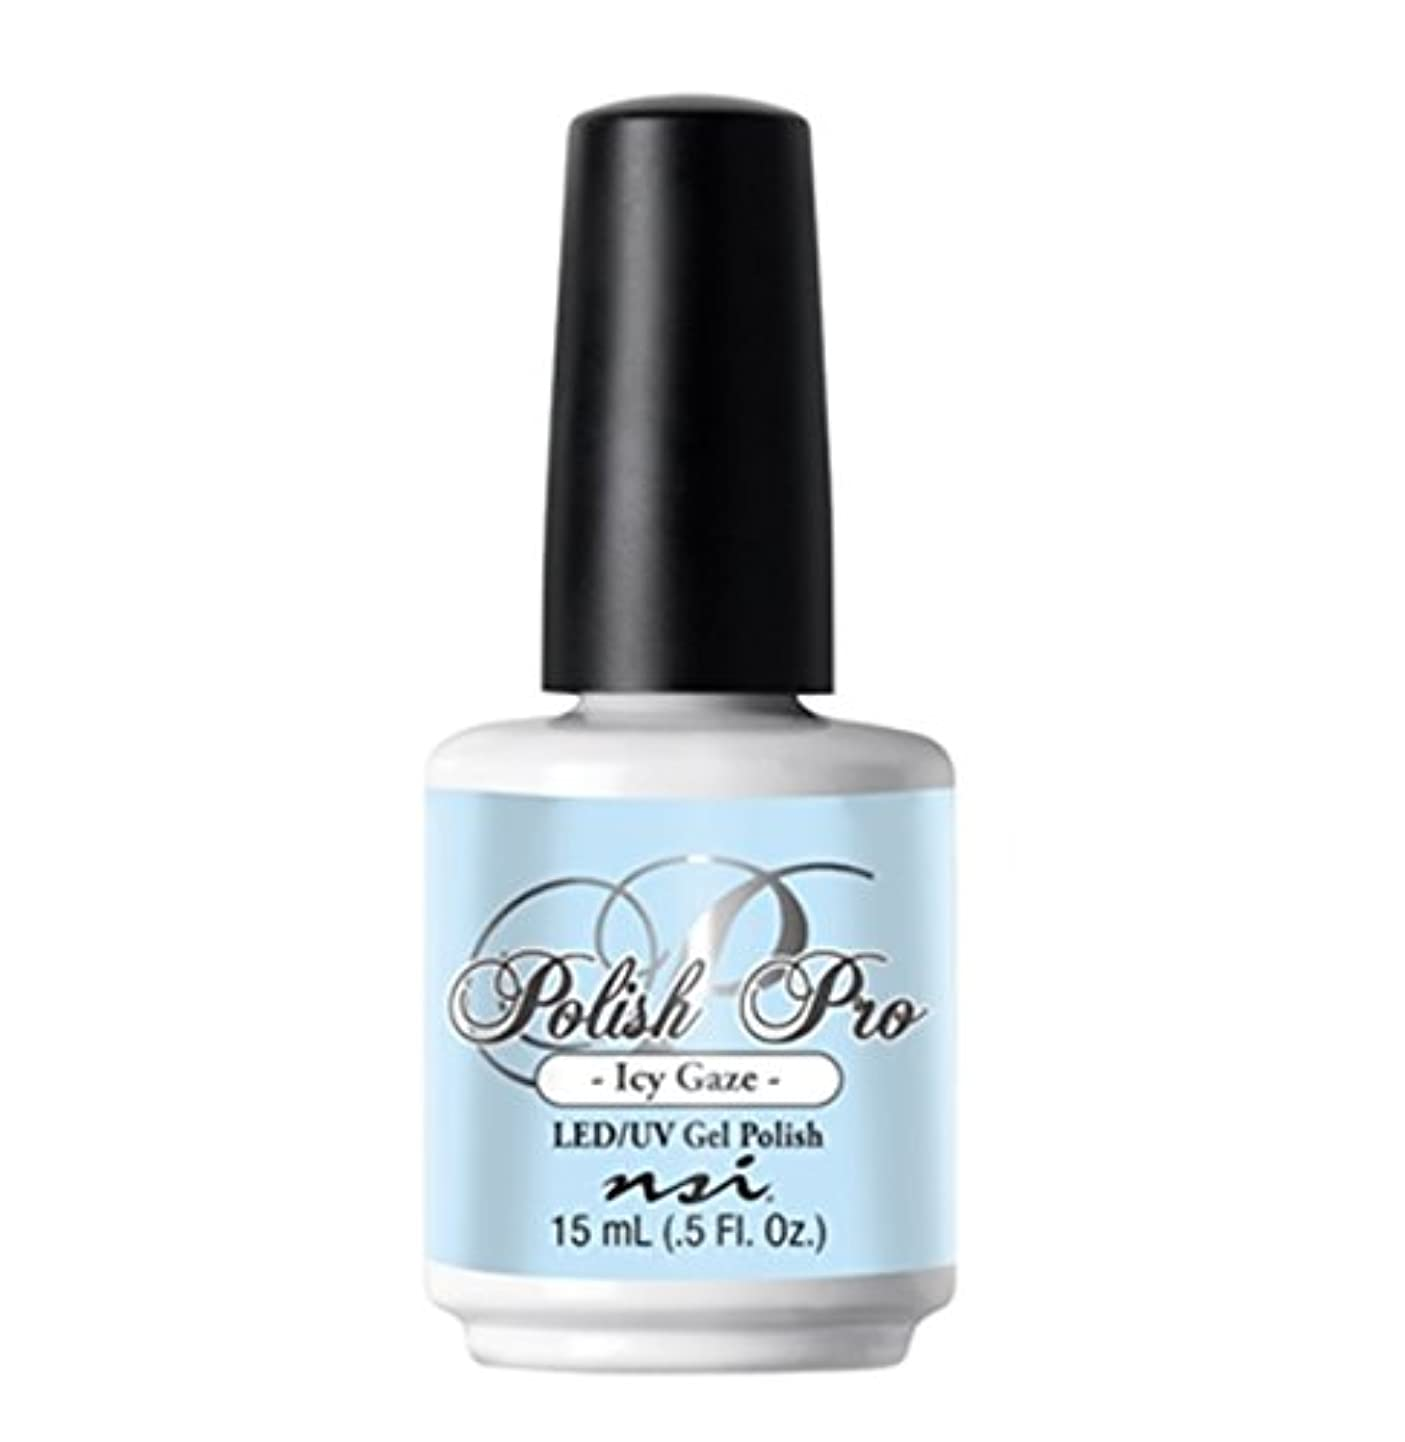 高価なマウスピース人工的なNSI Polish Pro Gel Polish - The Ice Queen Collection - Icy Gaze - 15 ml/0.5 oz